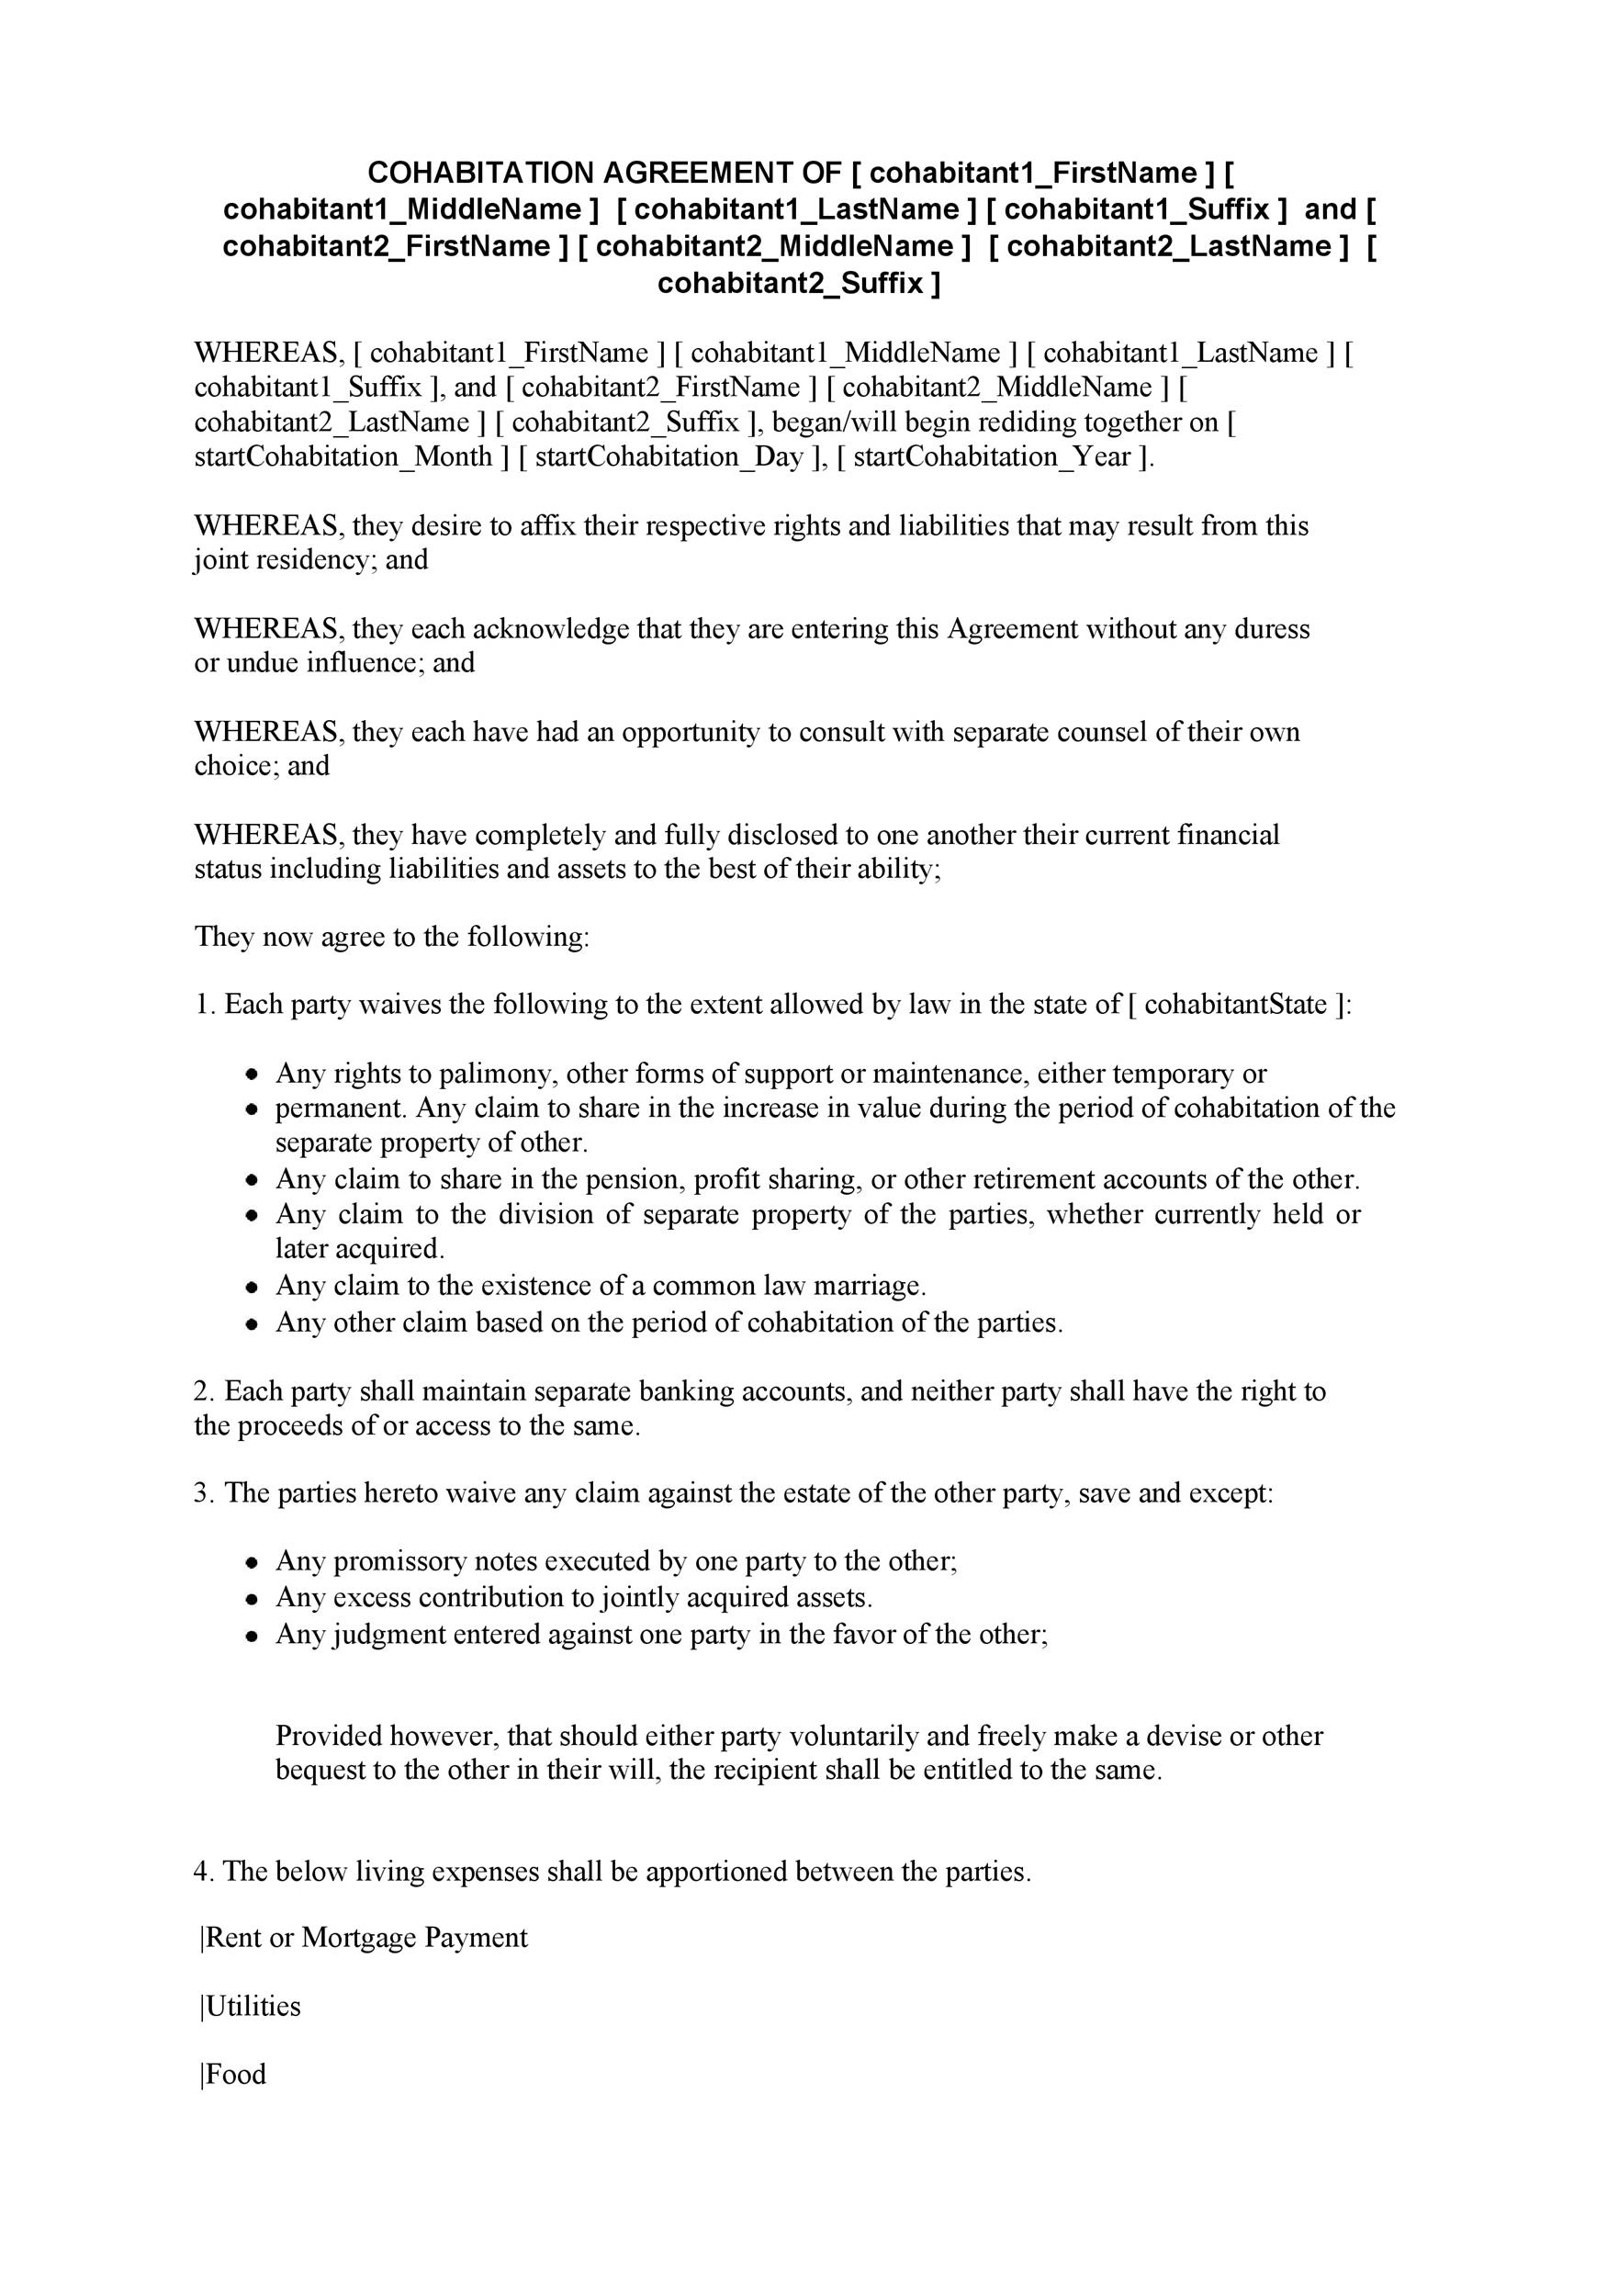 Free cohabitation agreement template 24